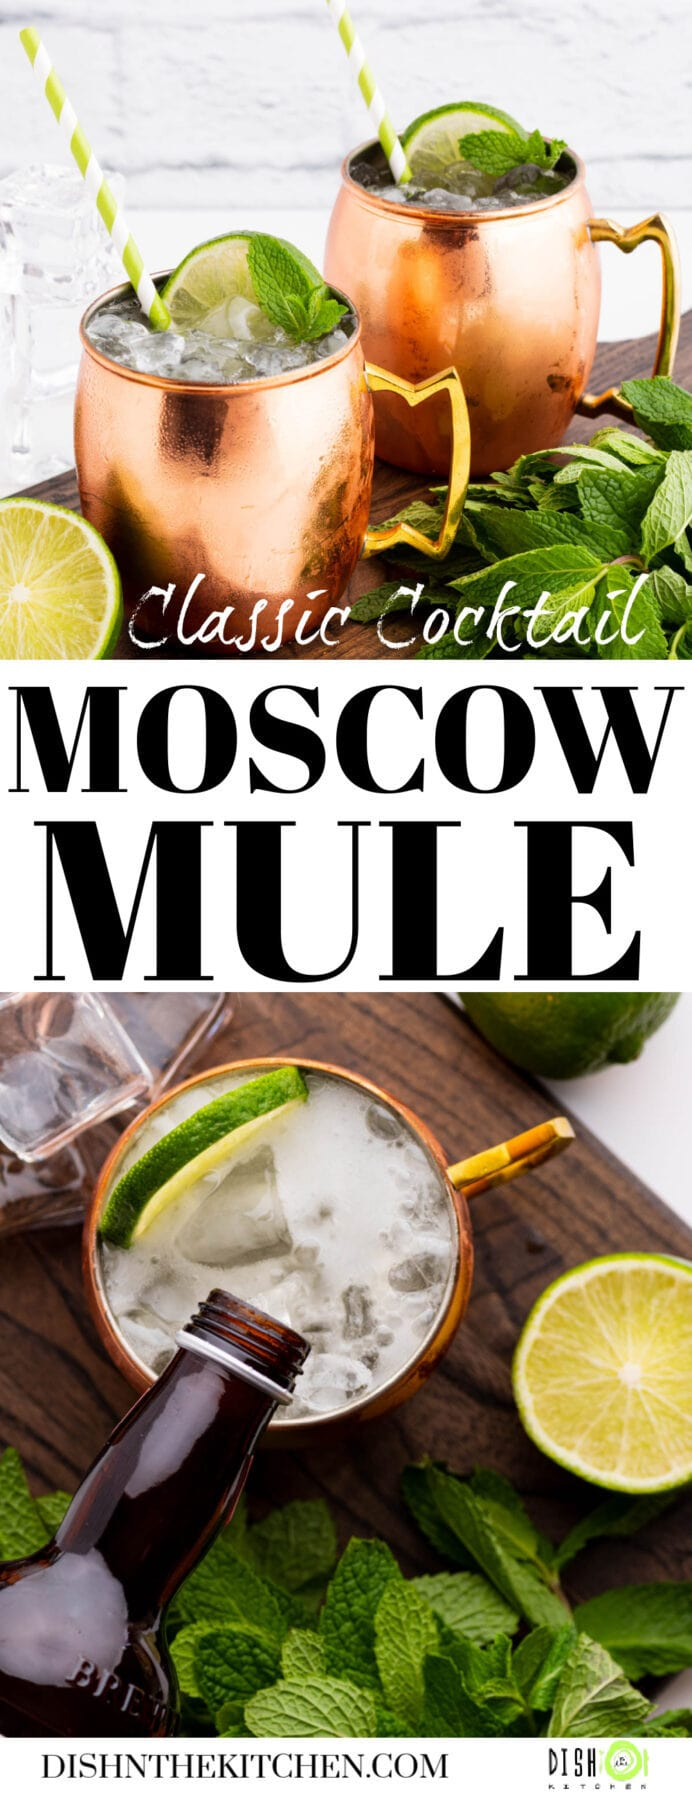 Pinterest image of two icy Moscow Mule cocktails in copper mugs surrounded by lime and fresh mint.